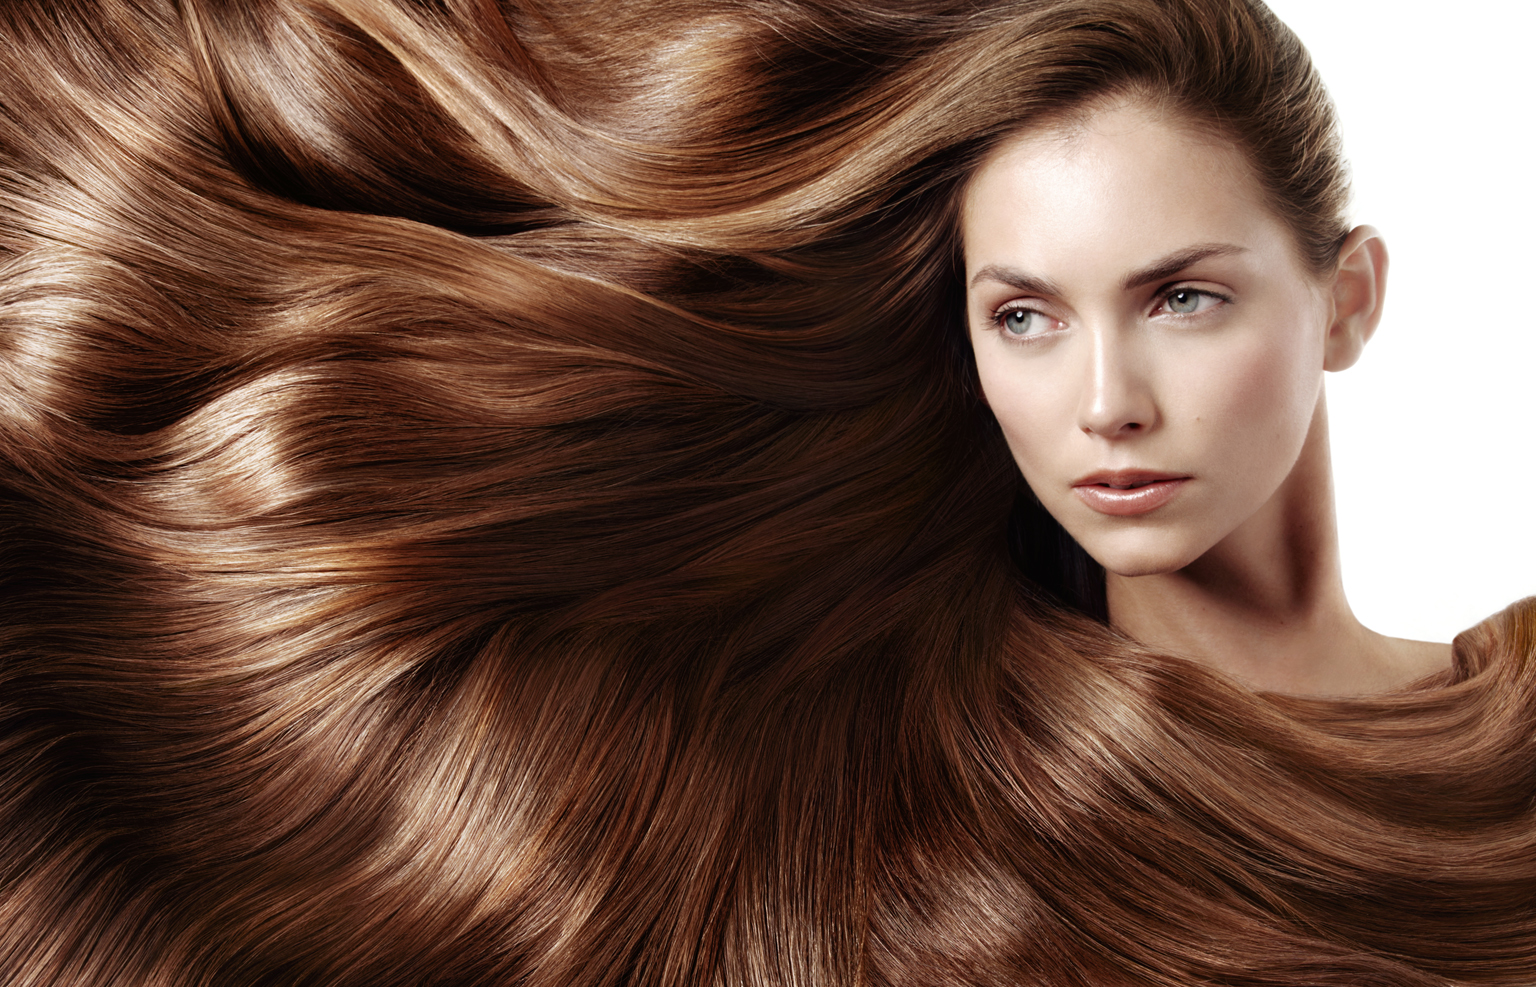 get healthy hair for free capestyle magazine online